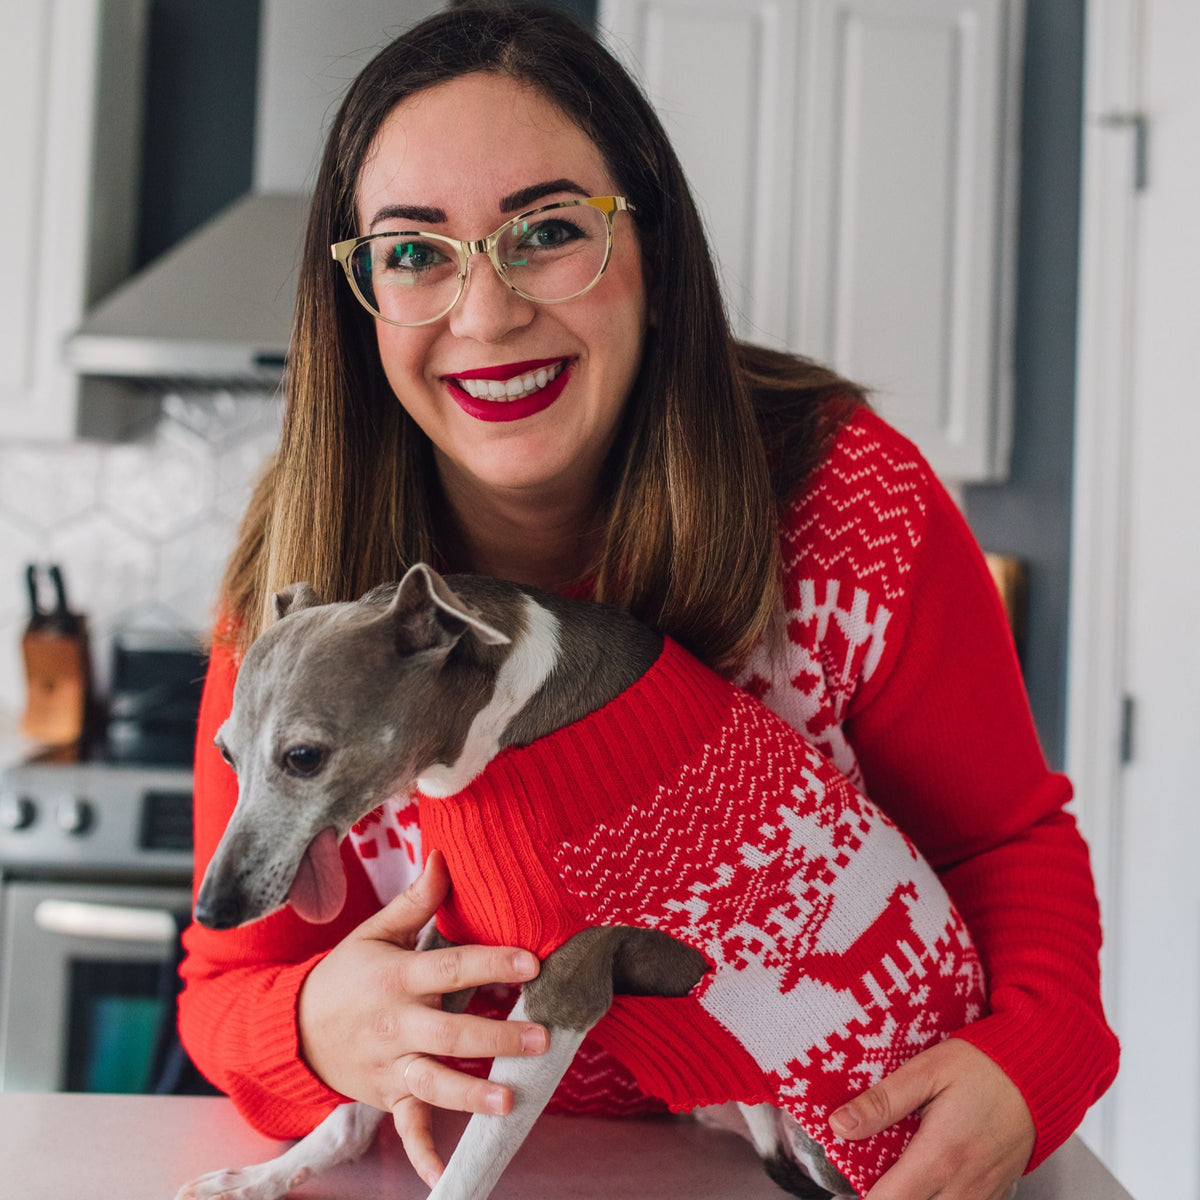 Human and Italian Greyhound in Classic Christmas sweaters